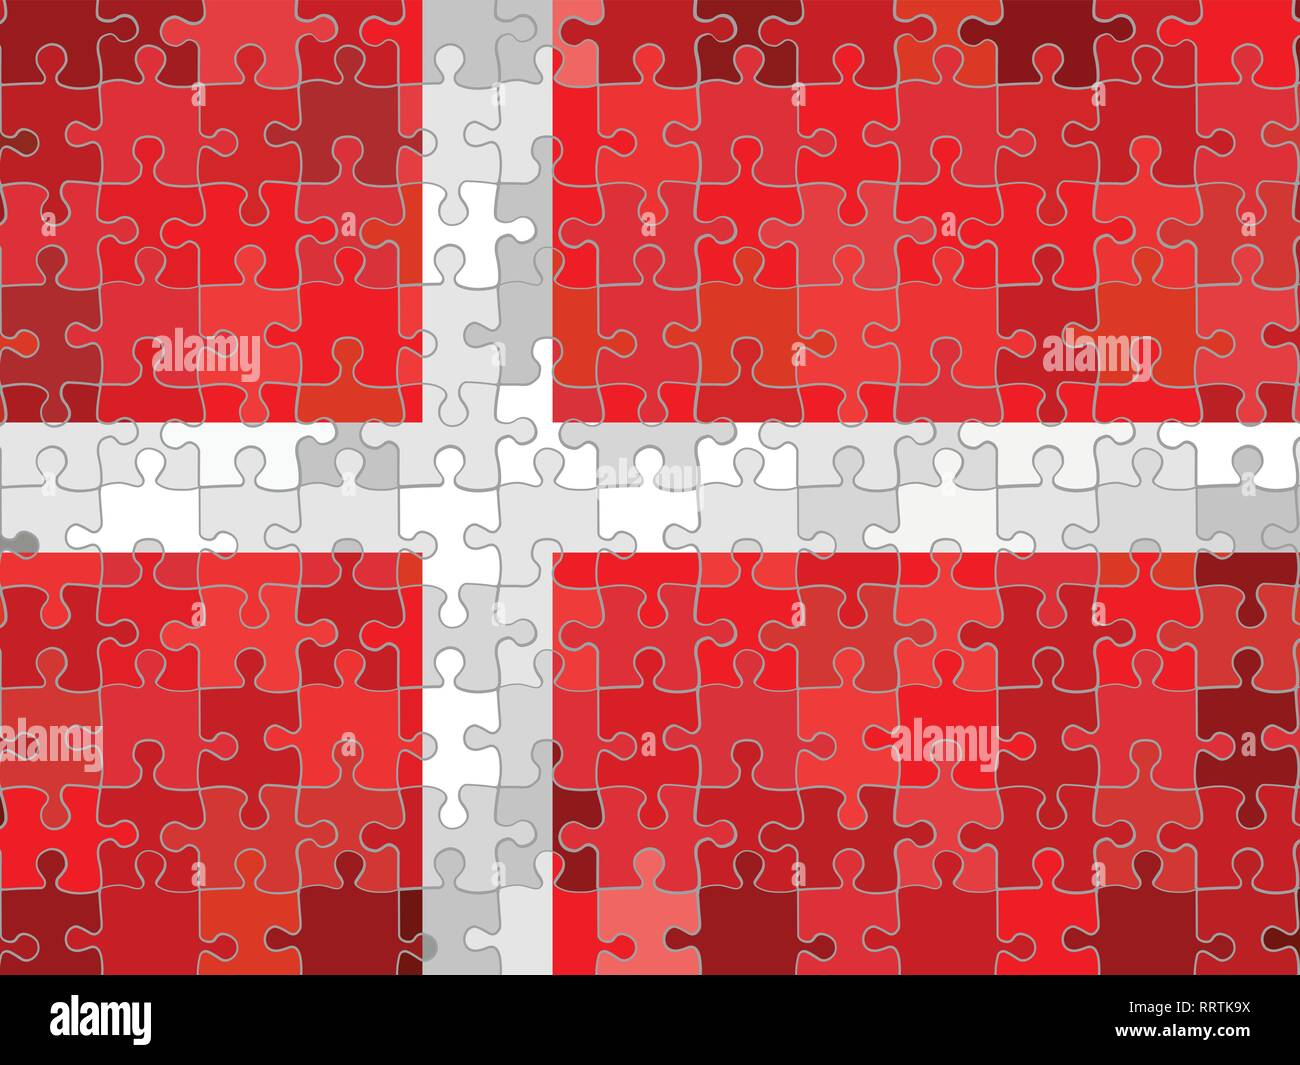 Denmark flag made of puzzle background - Illustration - Stock Vector